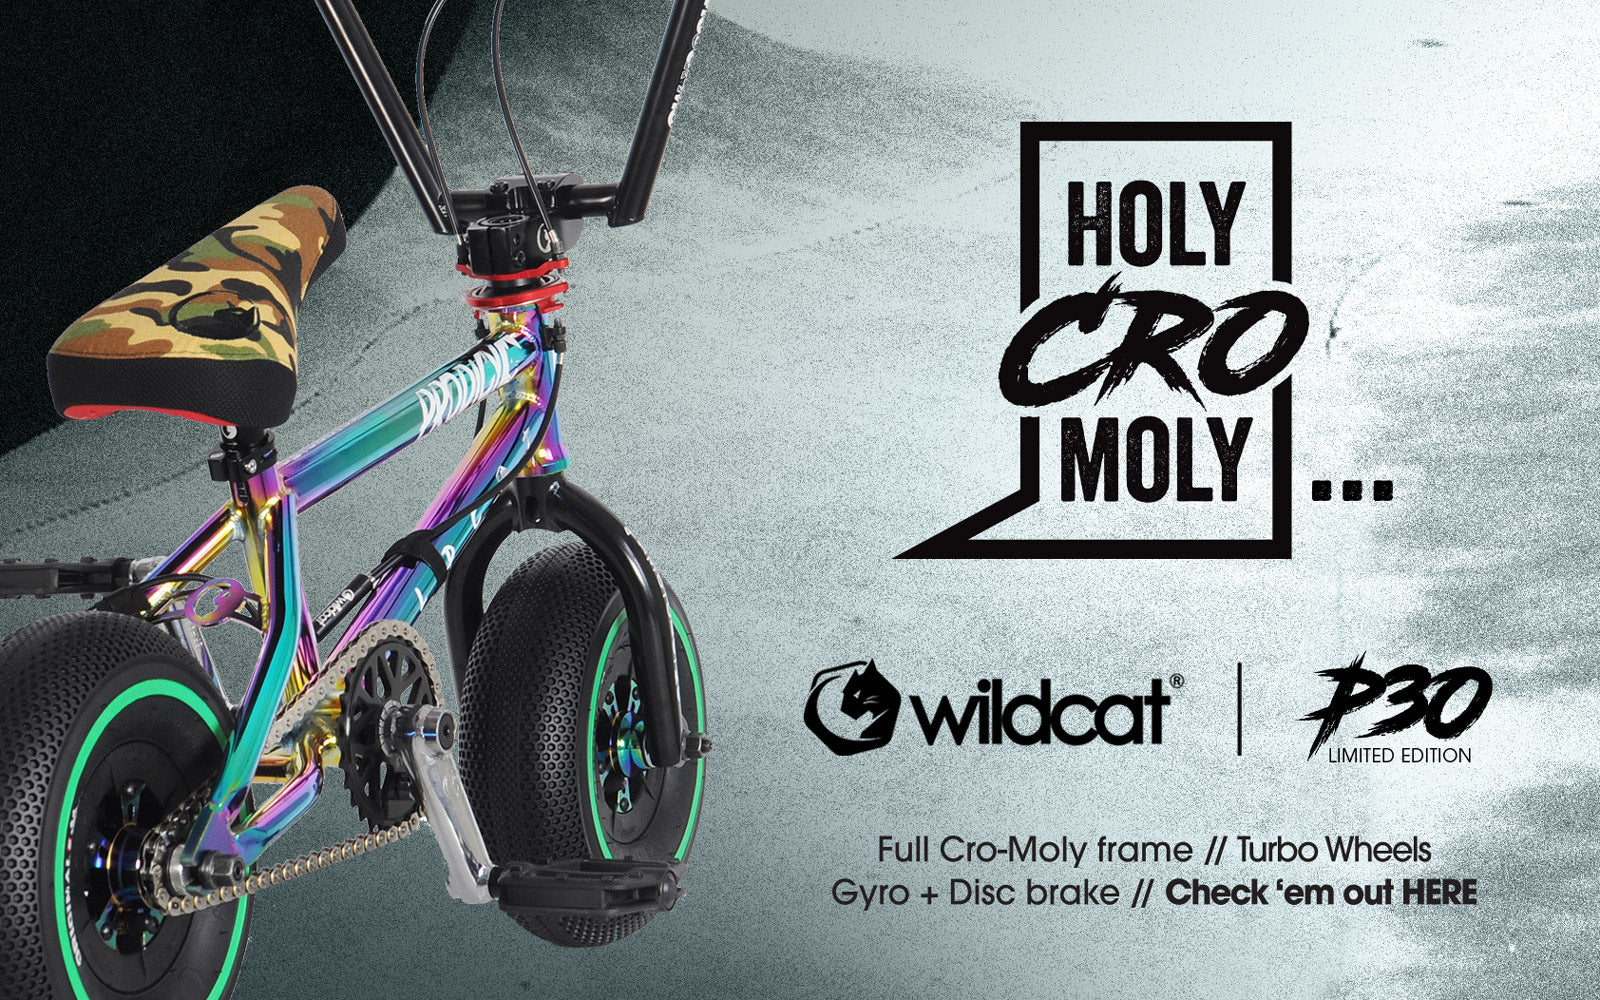 Wildcat Mini BMX Pro Series P30 full chromoly frame